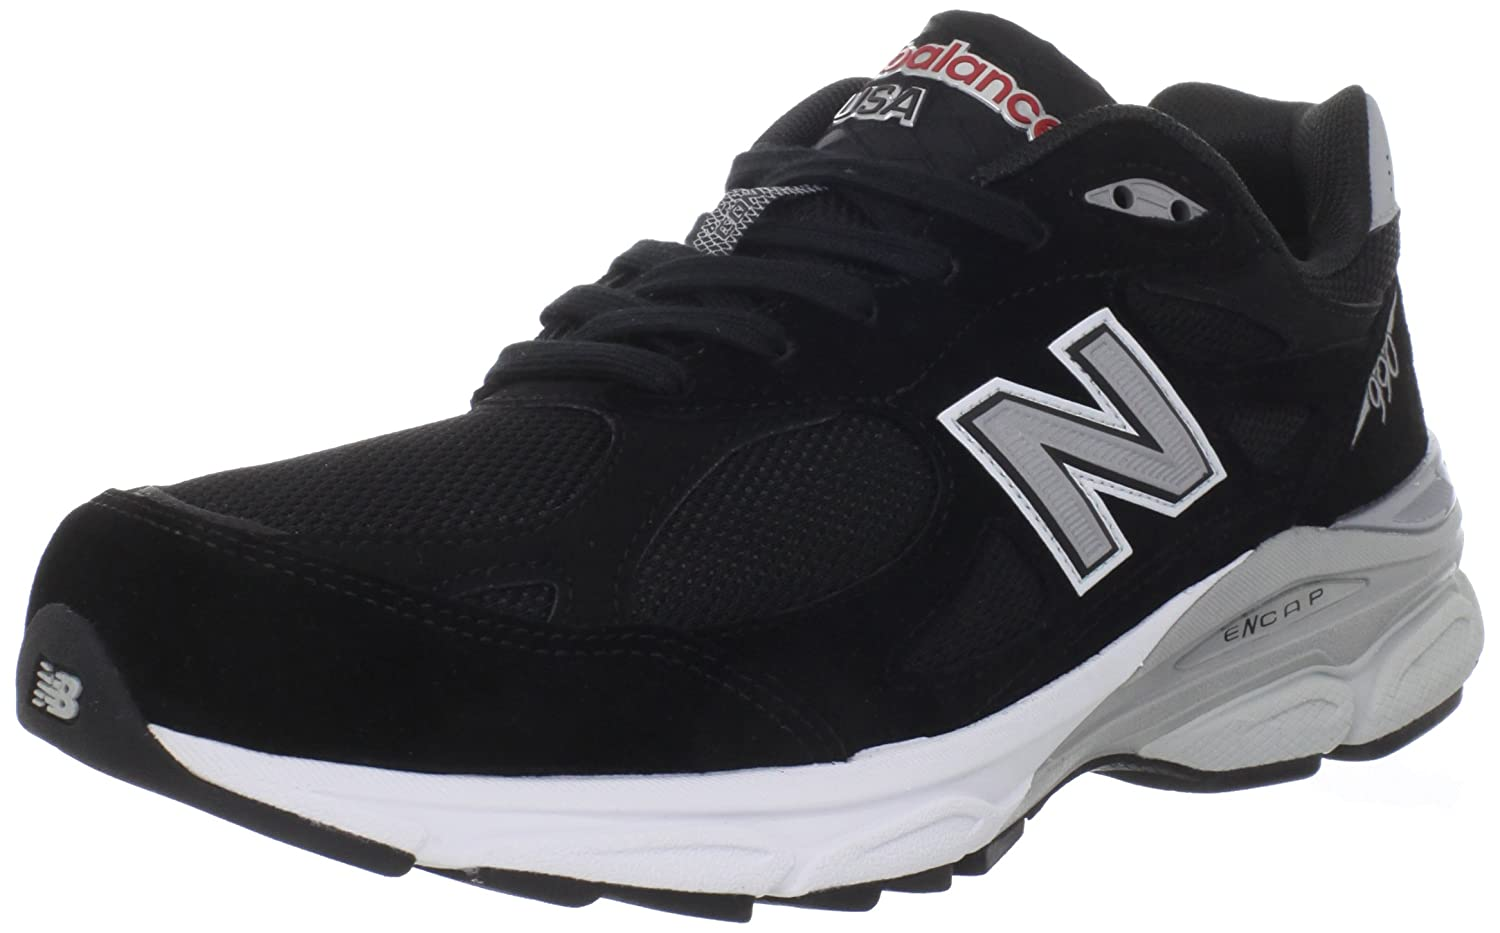 joes outlet promo code all black new balance trainers